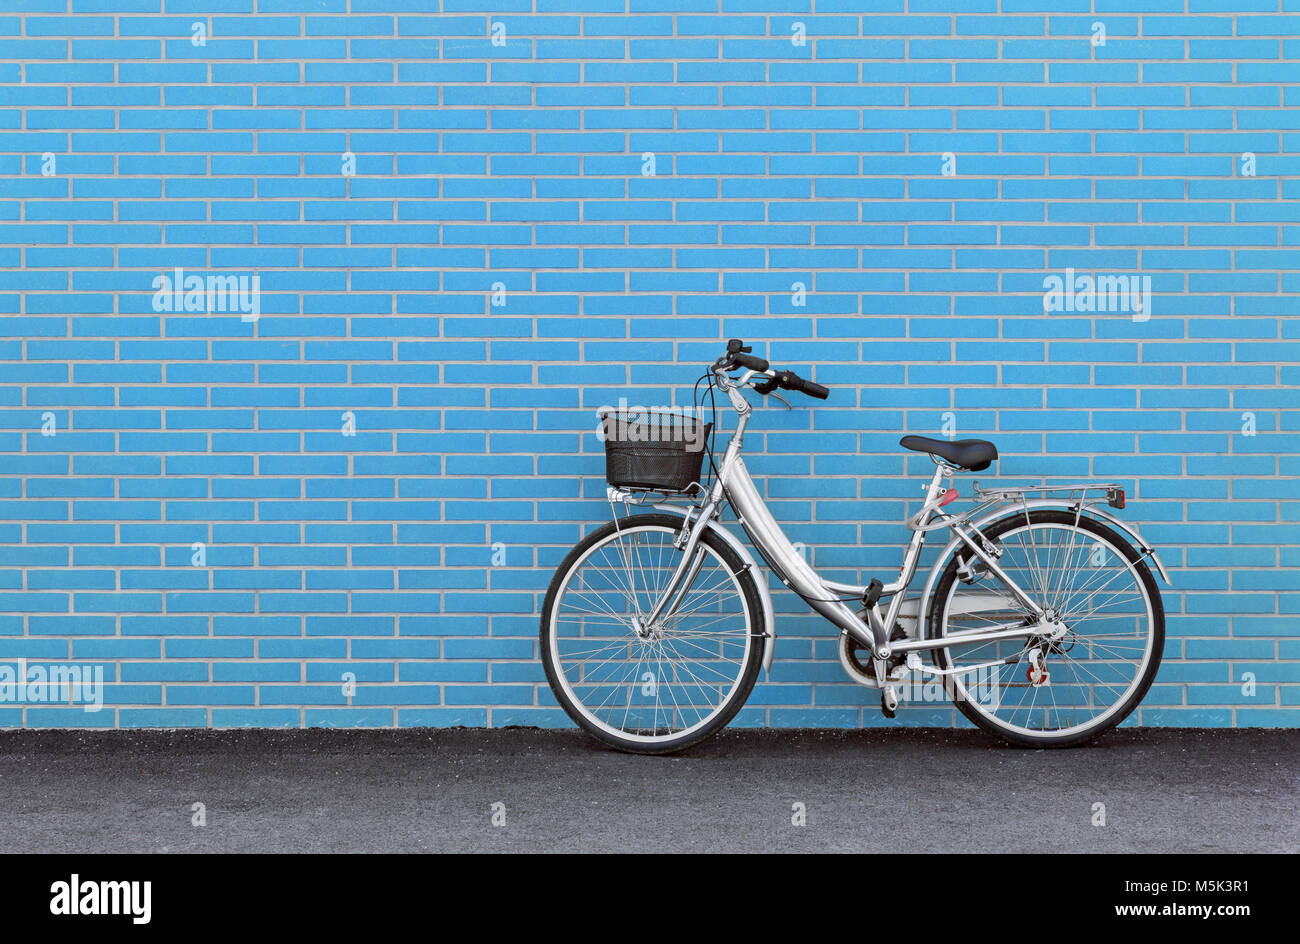 Women's bicycle against a turquoise brick wall - Stock Image